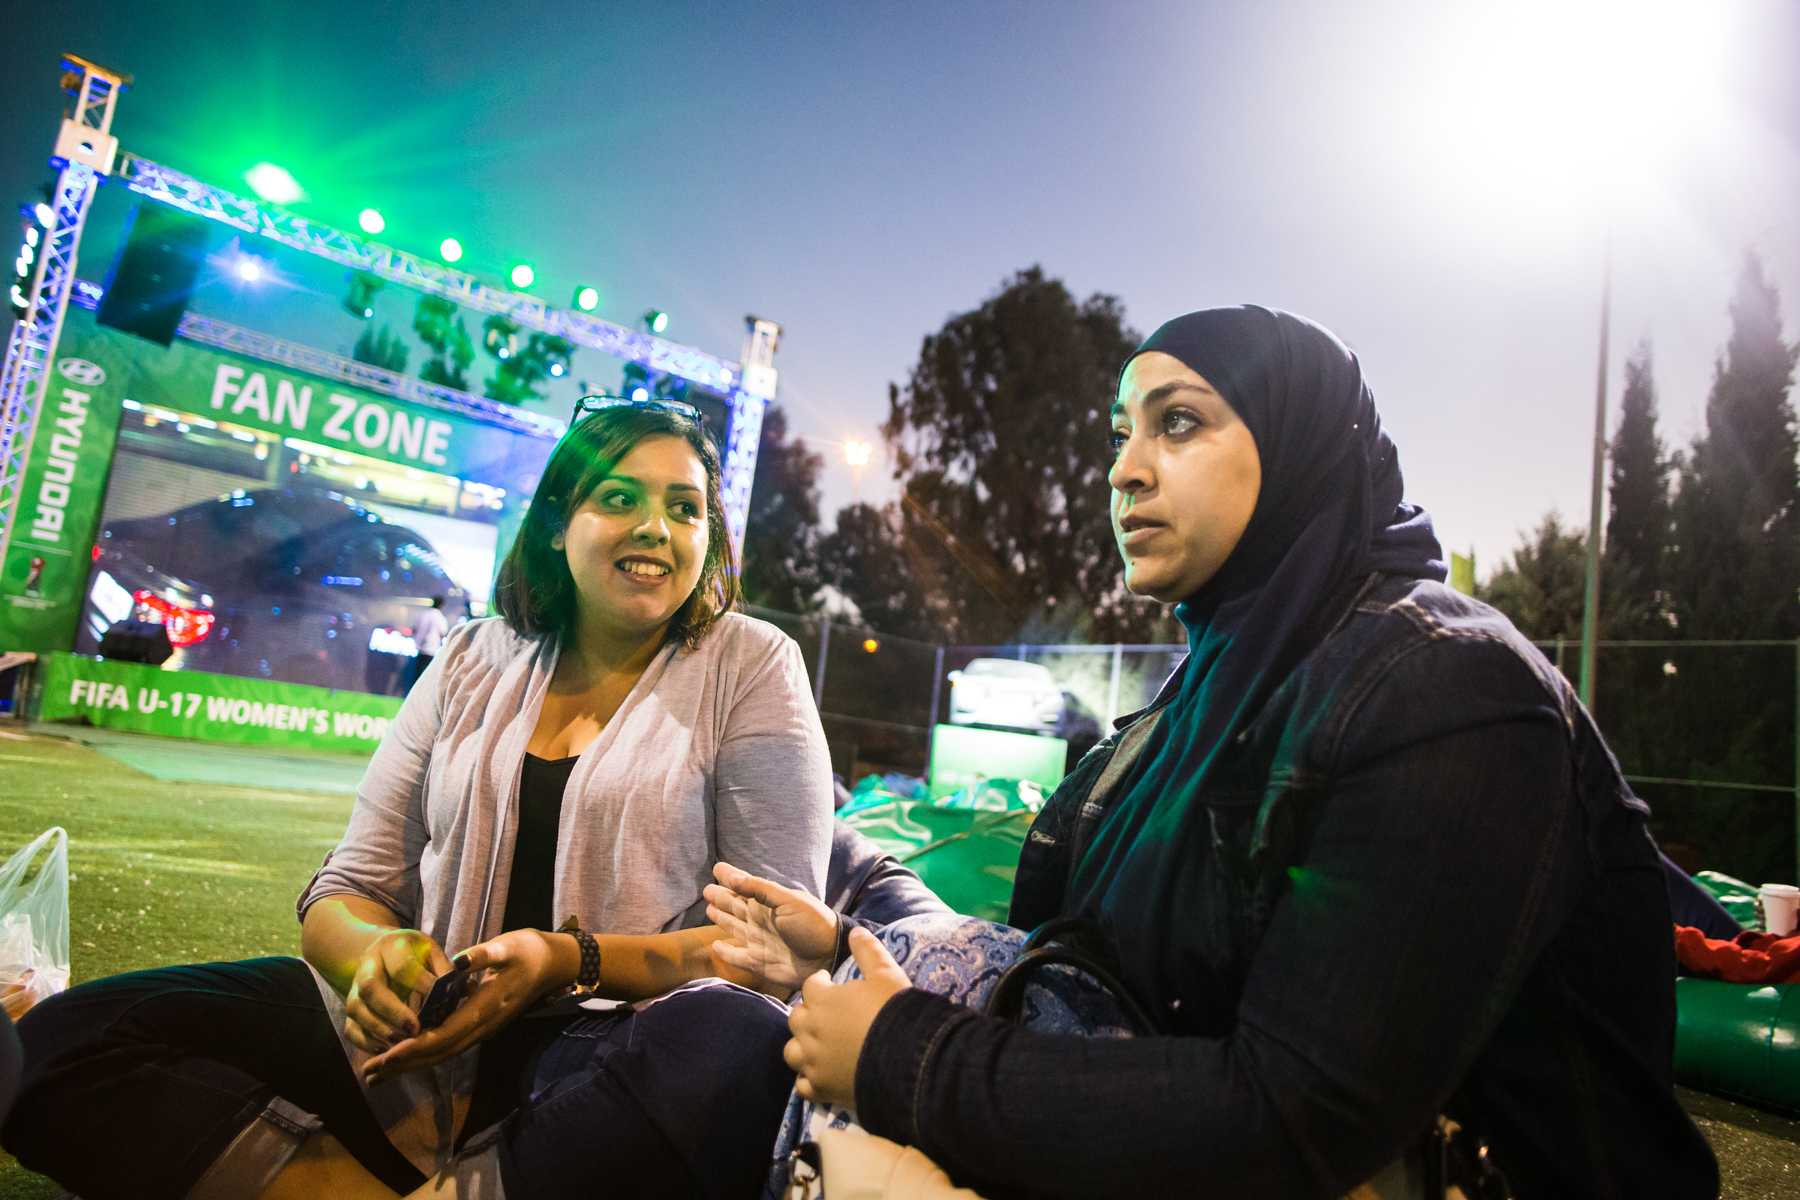 The fans: Esra'a Abed Alqader (left) and Fadwa Abushaikha, two volunteers for  the U17 women's world cup in Jordan, sit together and watch a match between Spain and Japan at the Fan Zone in King Abdullah Park in Amman, Jordan, on Oct. 17, 2016.